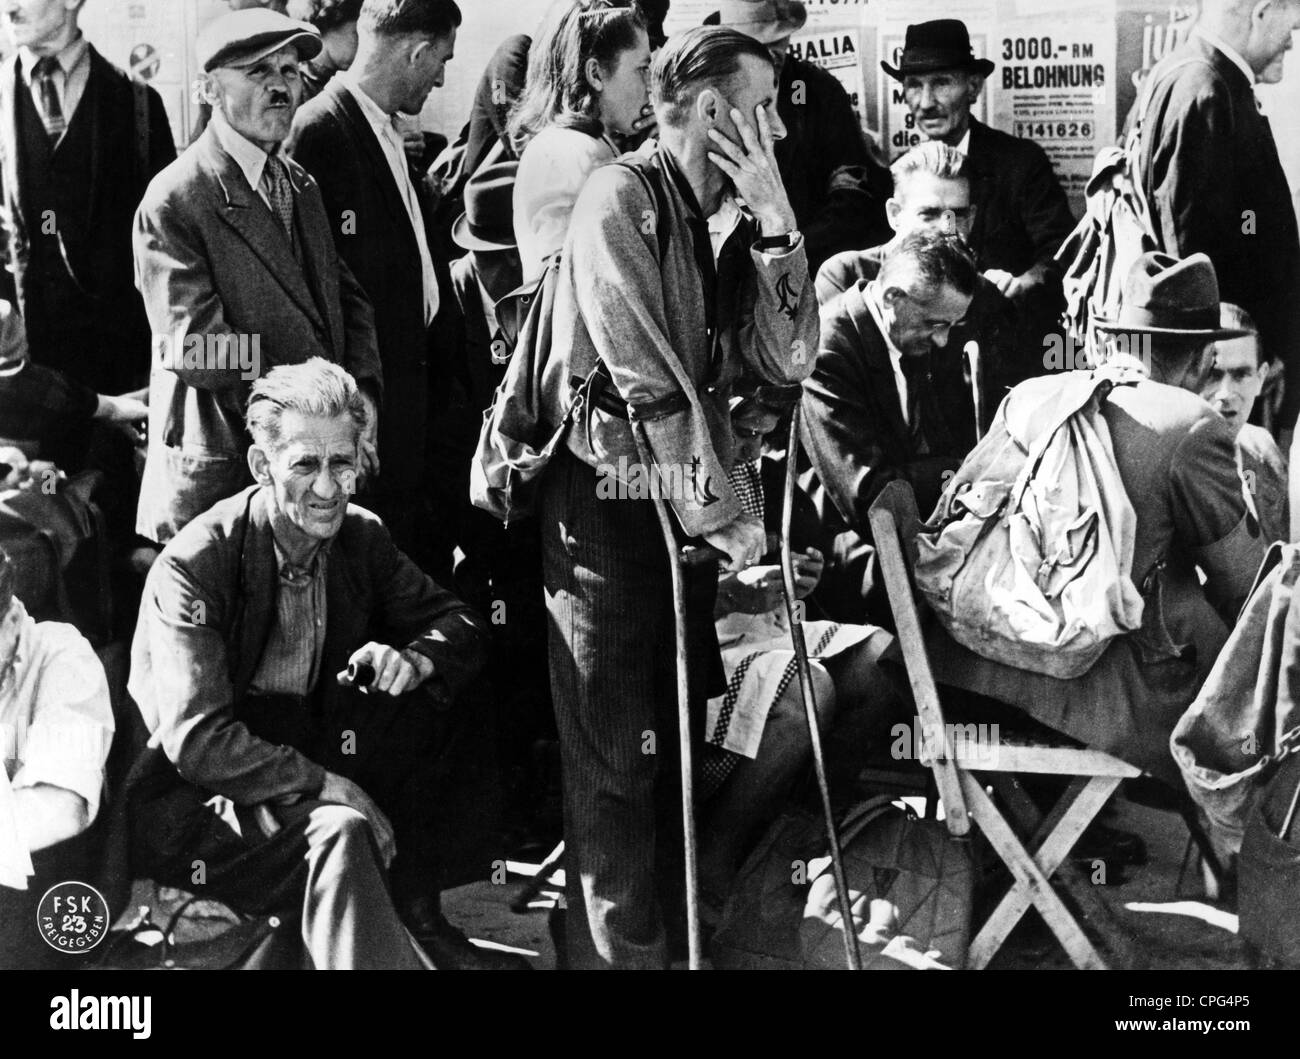 post war period, misery and hardship, Germany, food shortage, waiting line in front of a bakery, May 1945, Additional - Stock Image